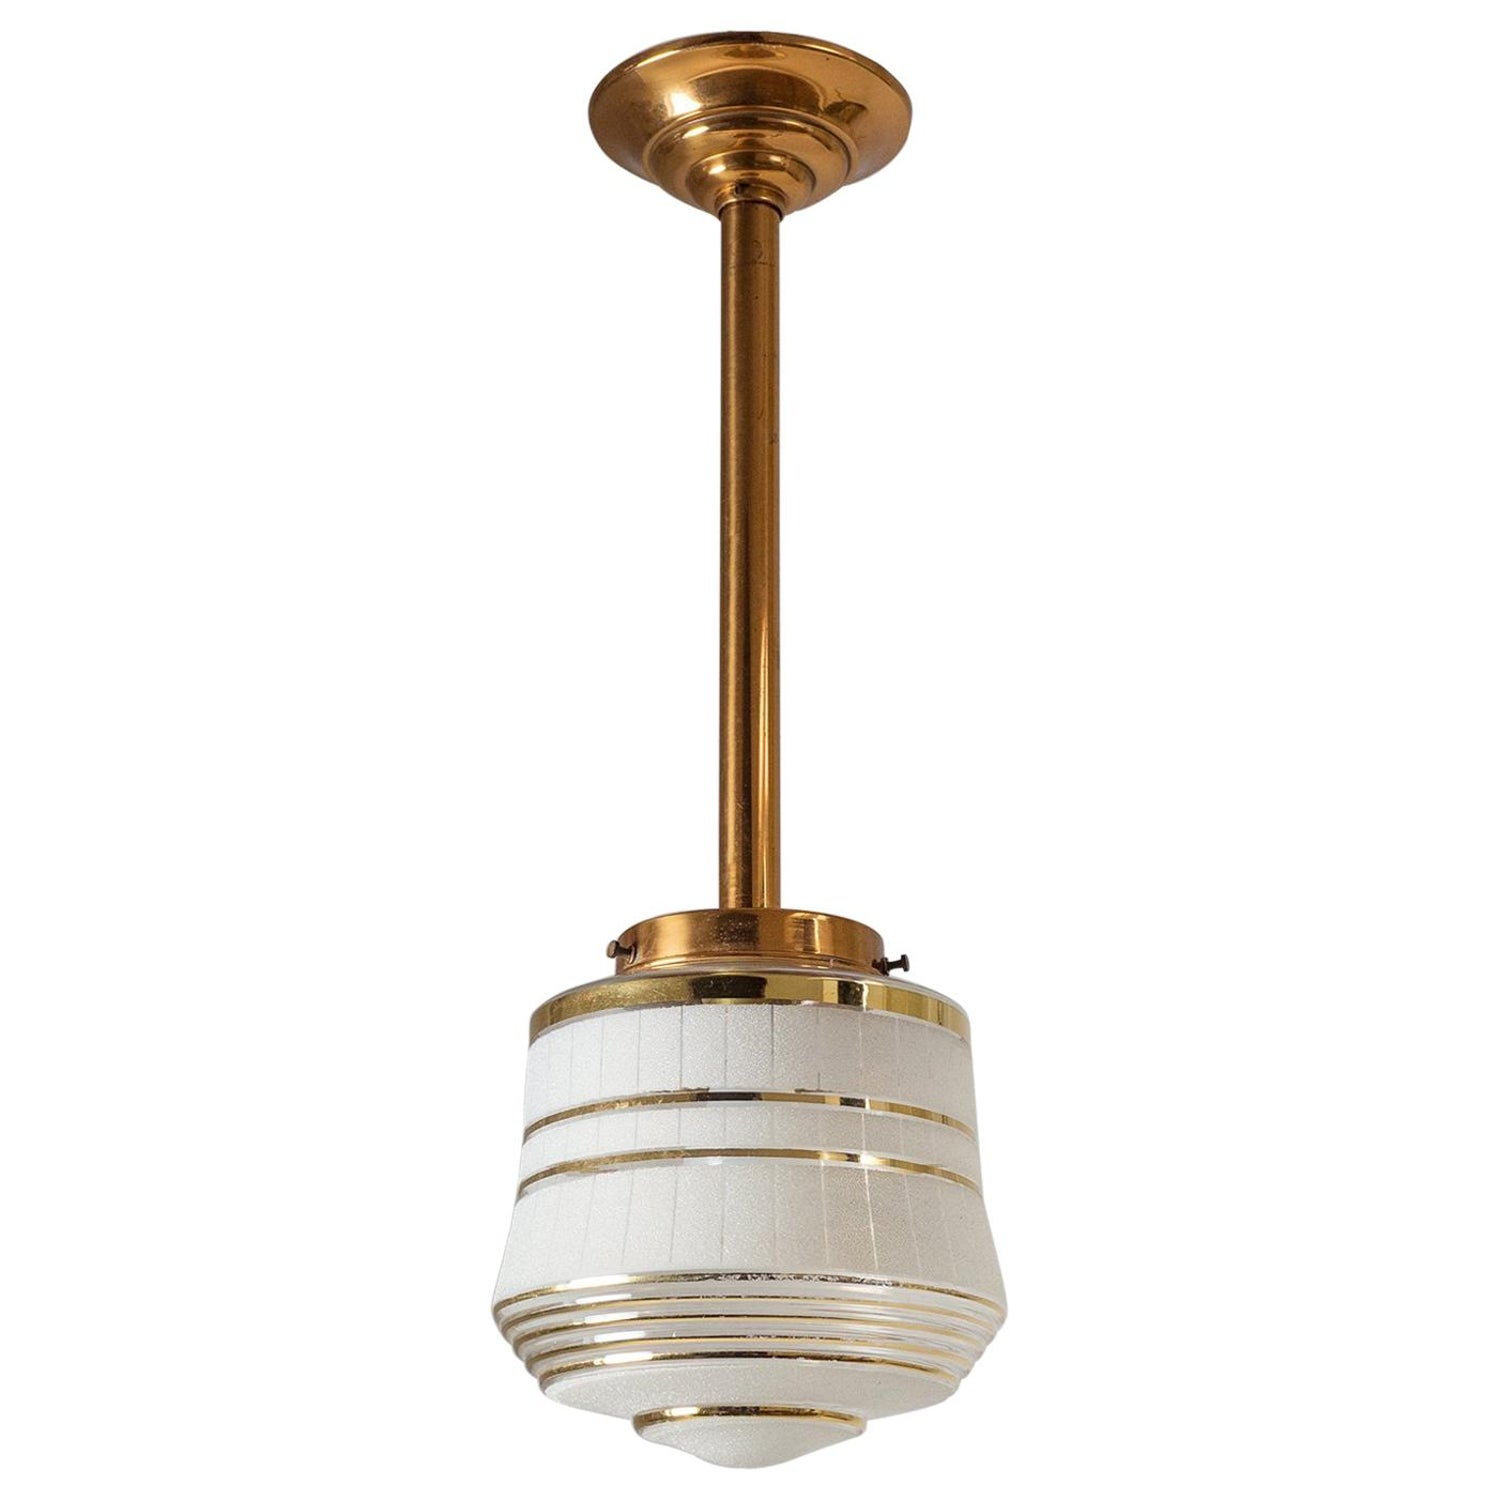 French art deco ceiling light 1940s for sale at 1stdibs